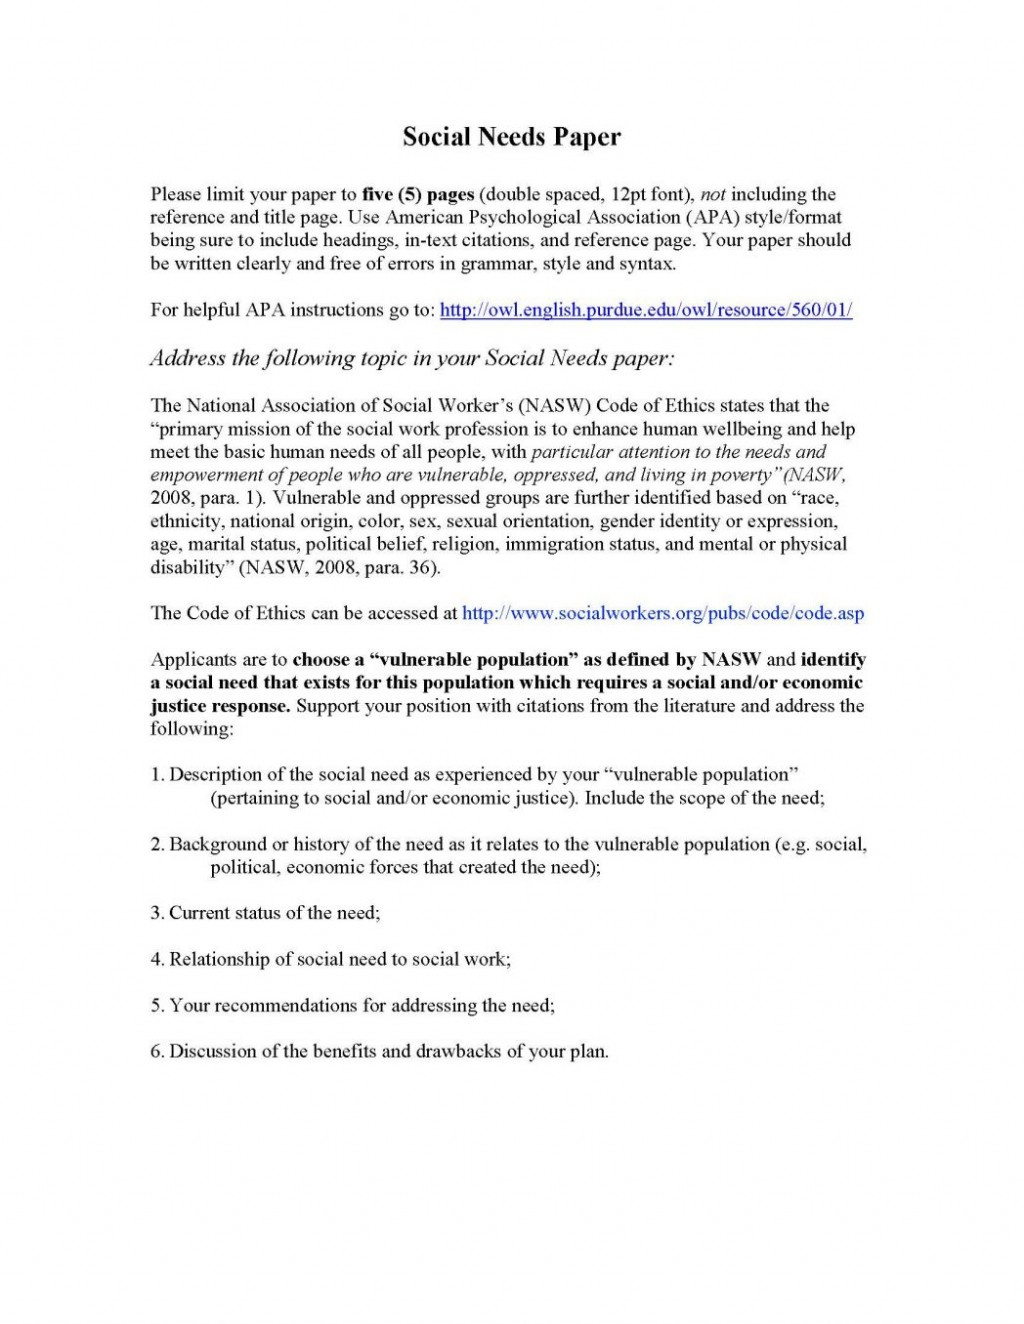 015 Why I Want To Social Worker Essay Example Sample For Graduate School From Friend Awesome Collection Of Work Grad Personal Statement Admission Essays Examples Outstanding Be A Study Do Become Became Large